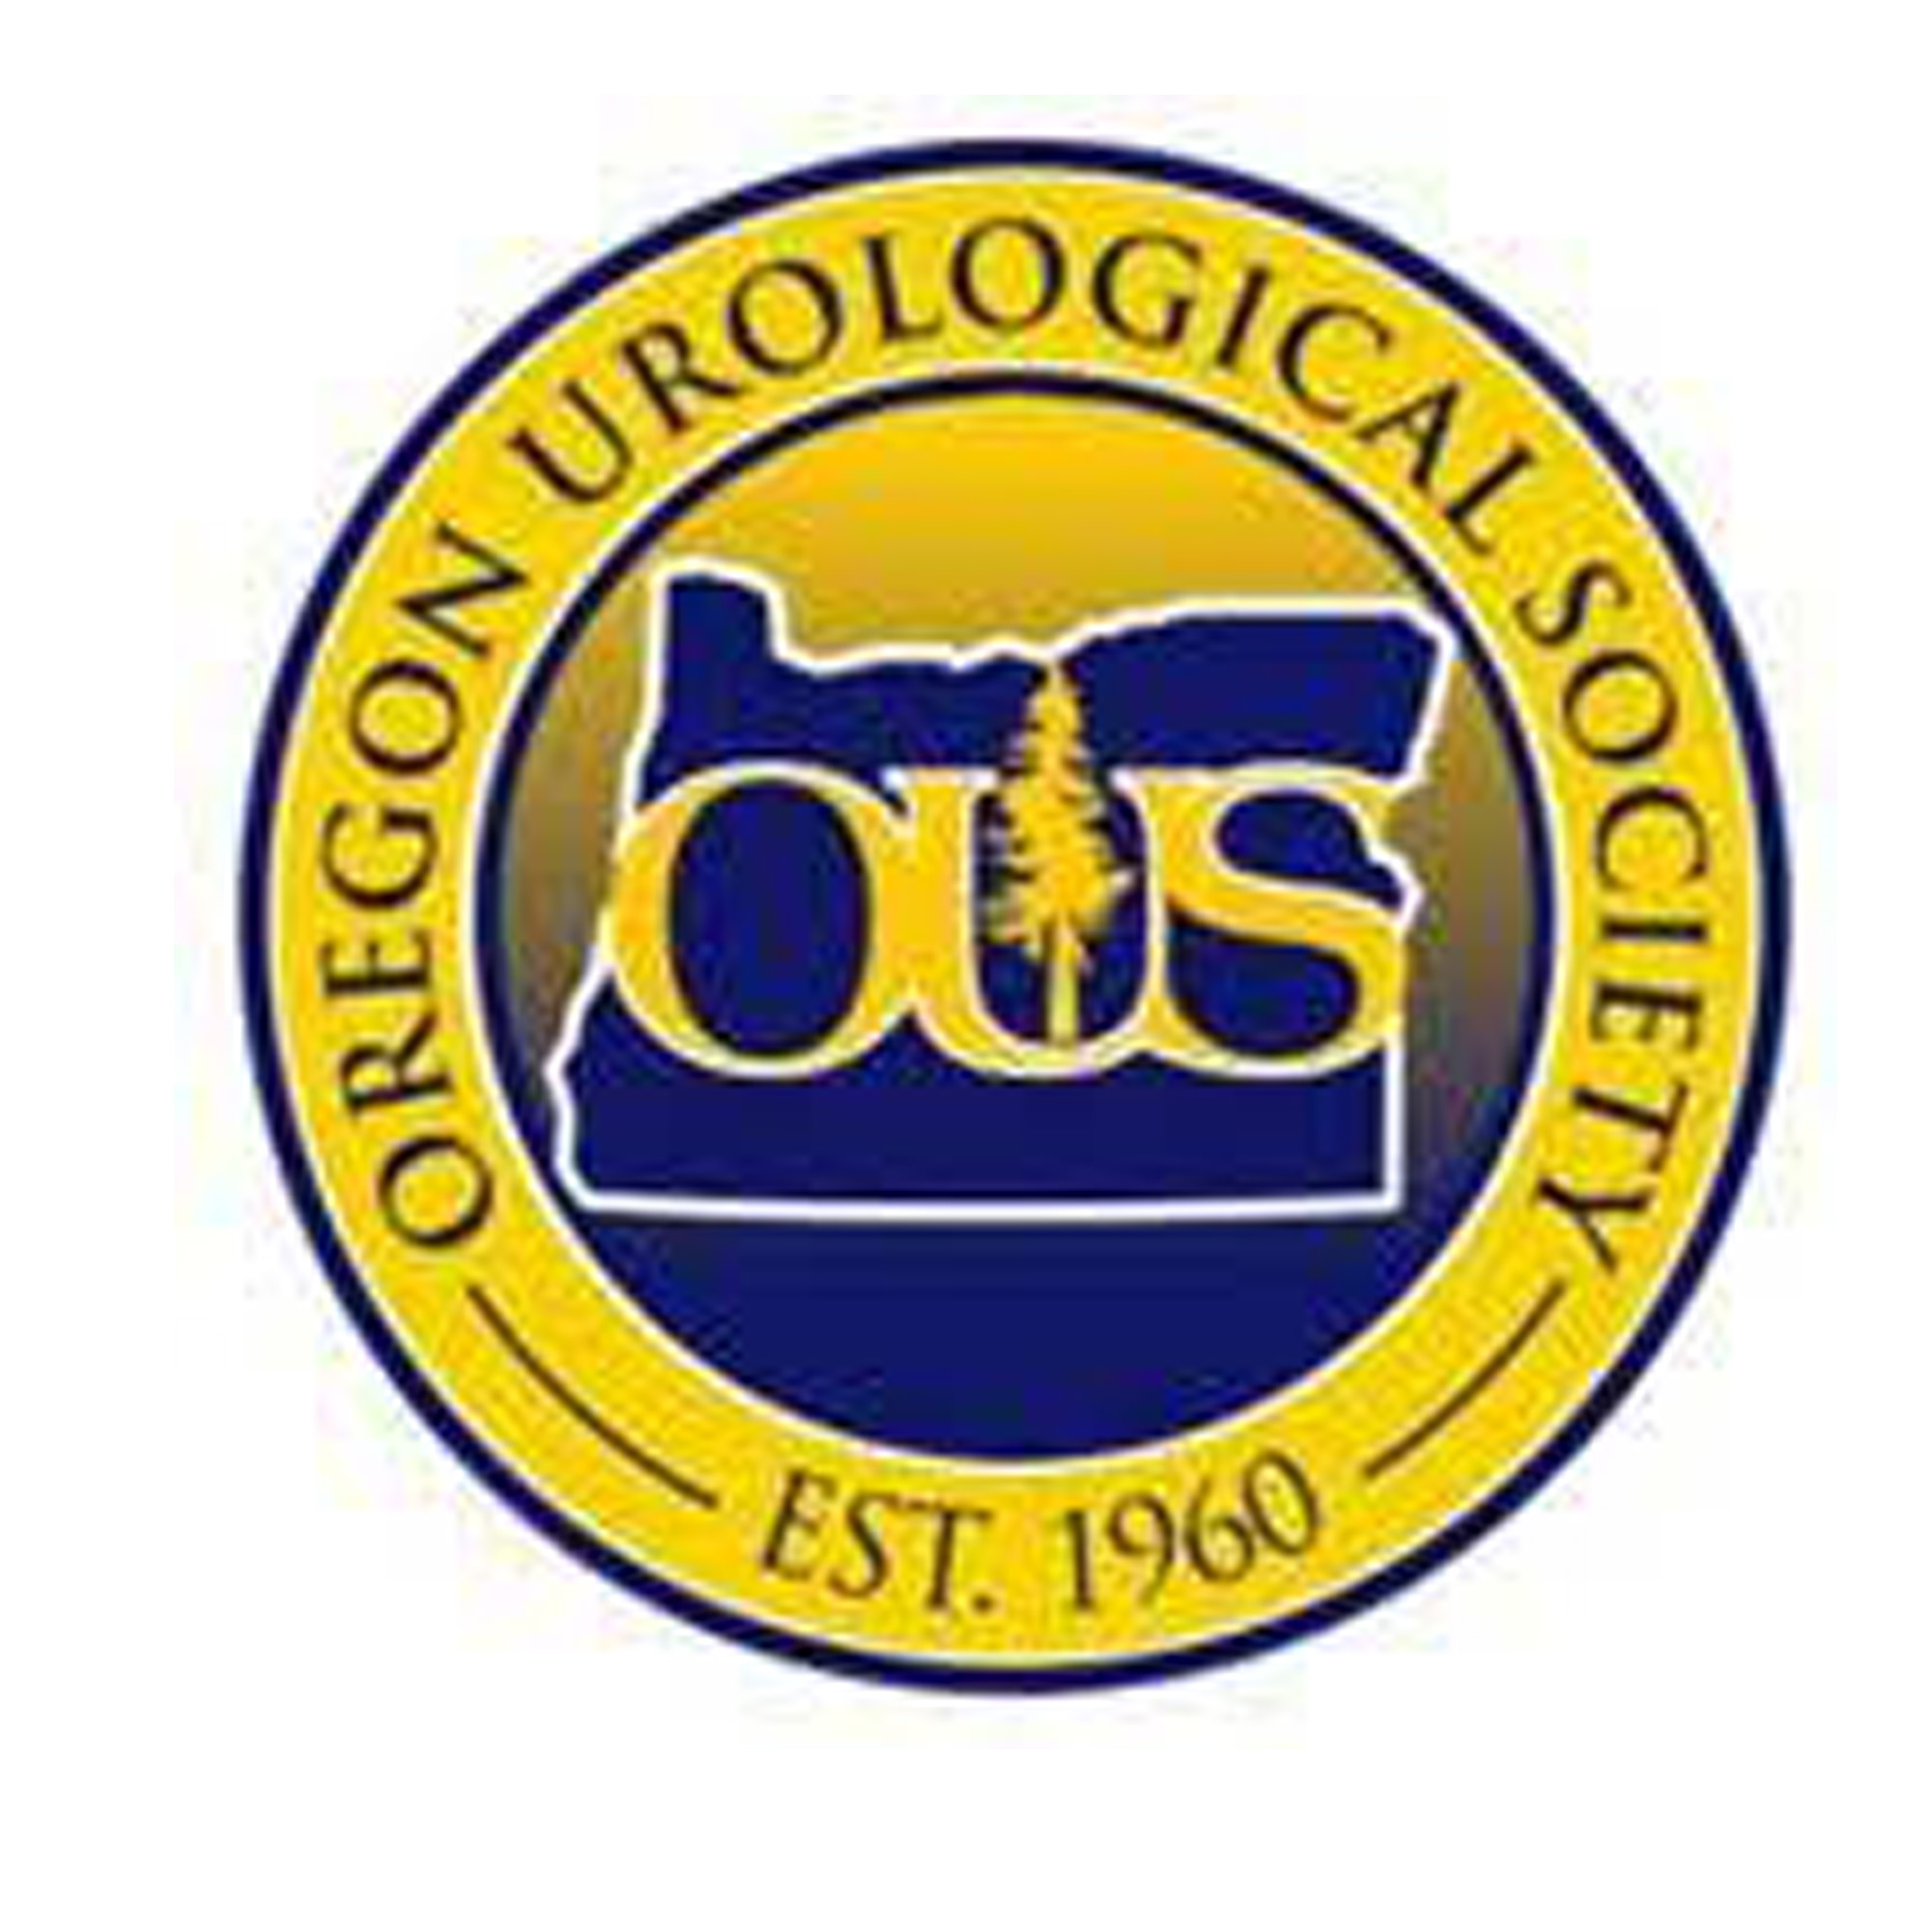 Oregon Urological Society